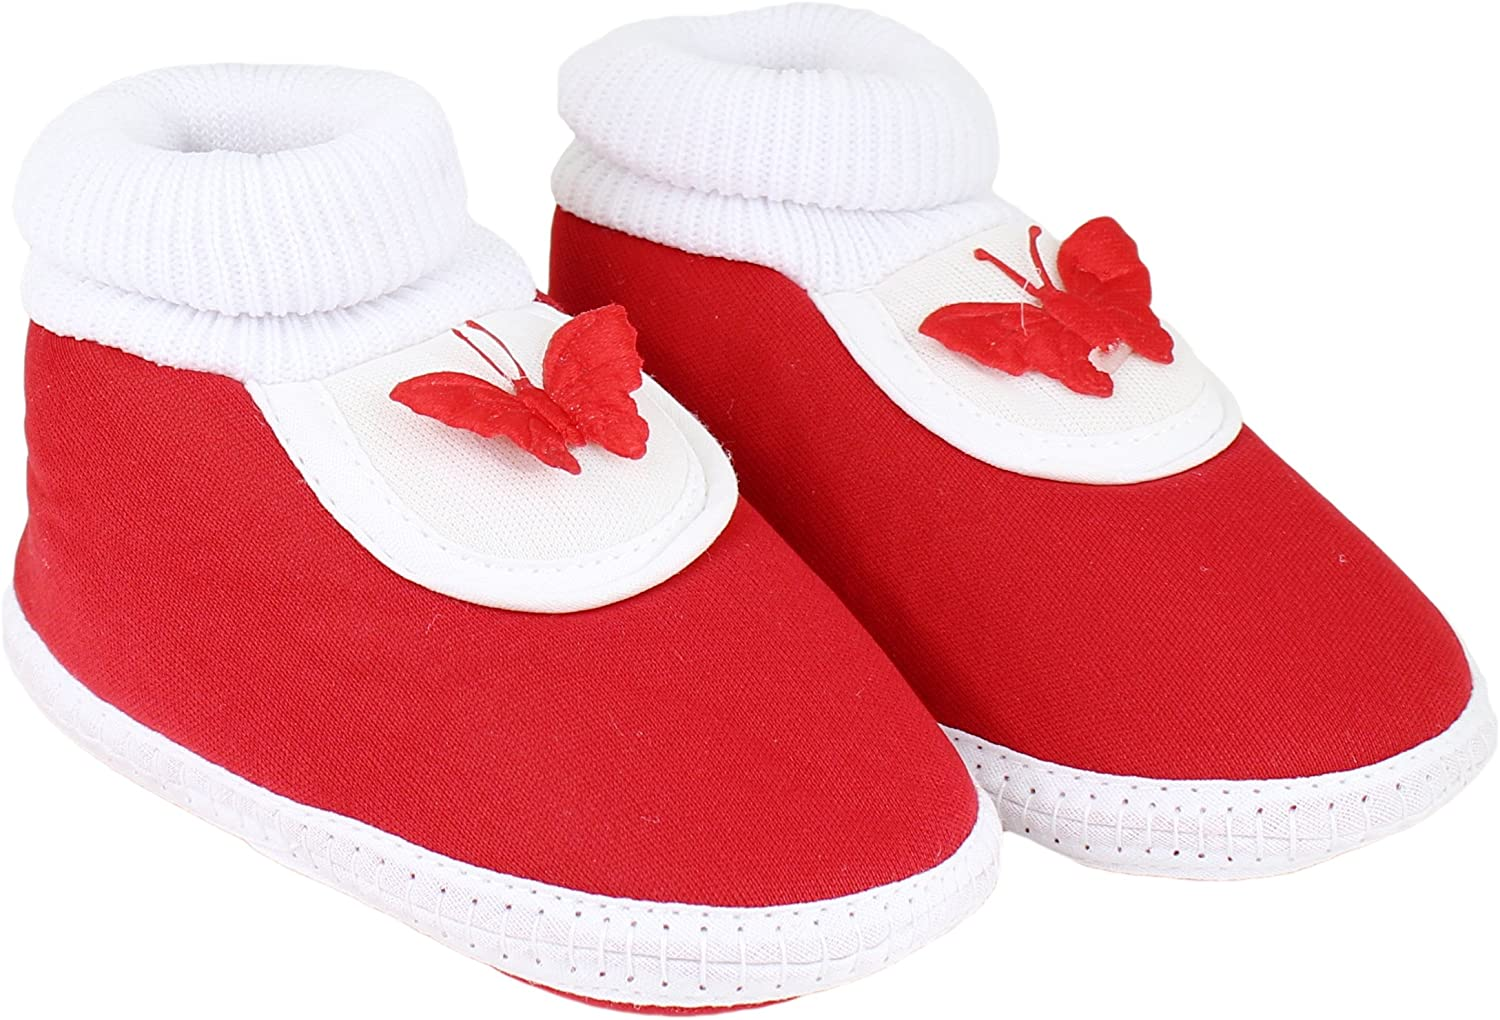 Neska Moda Unisex Baby Booties For 9 To 12 Months (Red)